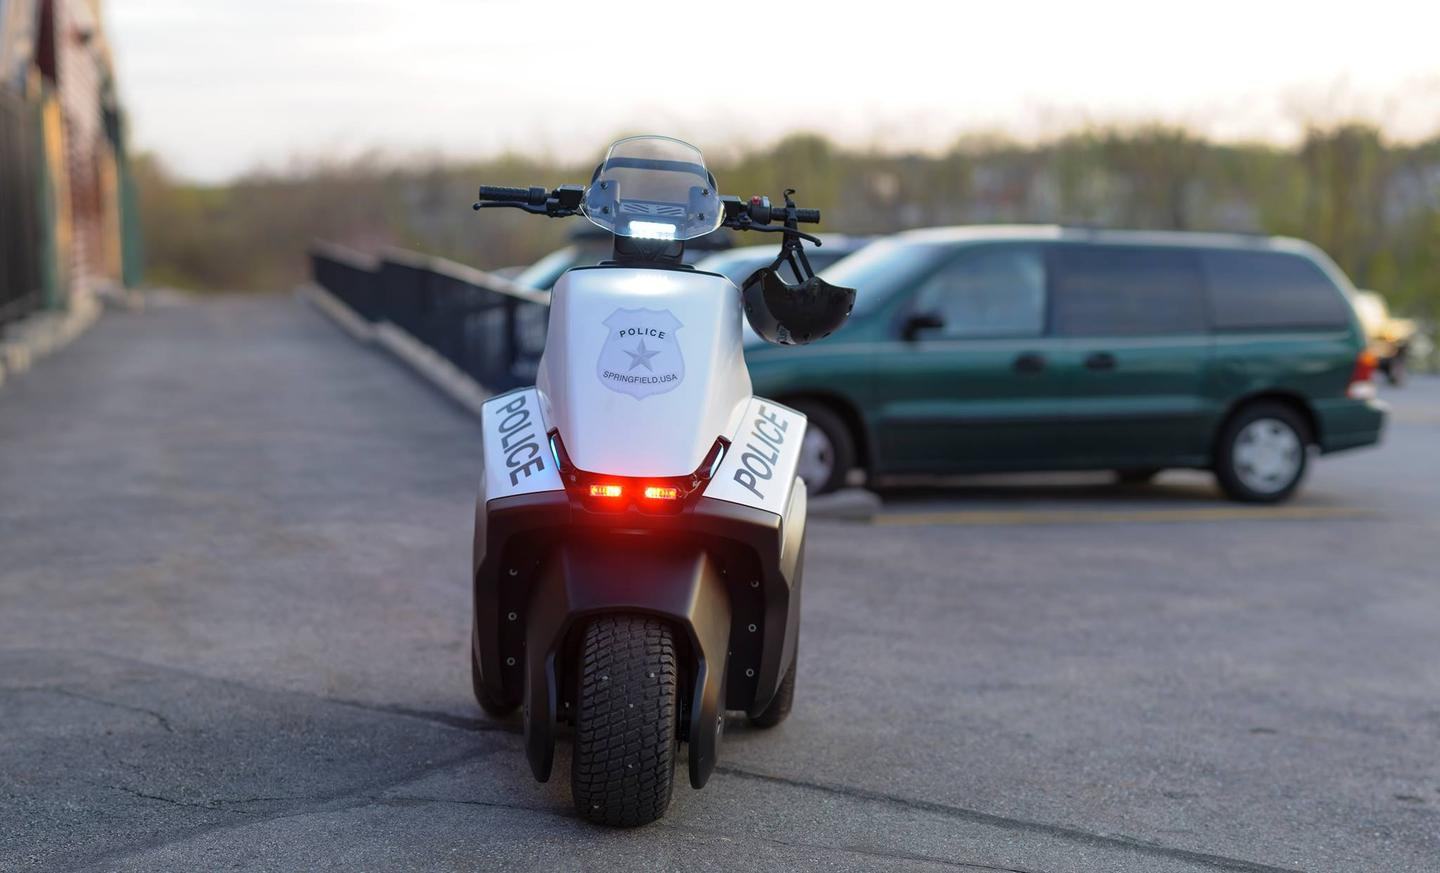 The SE-3 Patroller has independent direct rear wheel electric drive, Whelen emergency lights and siren, and LED headlight